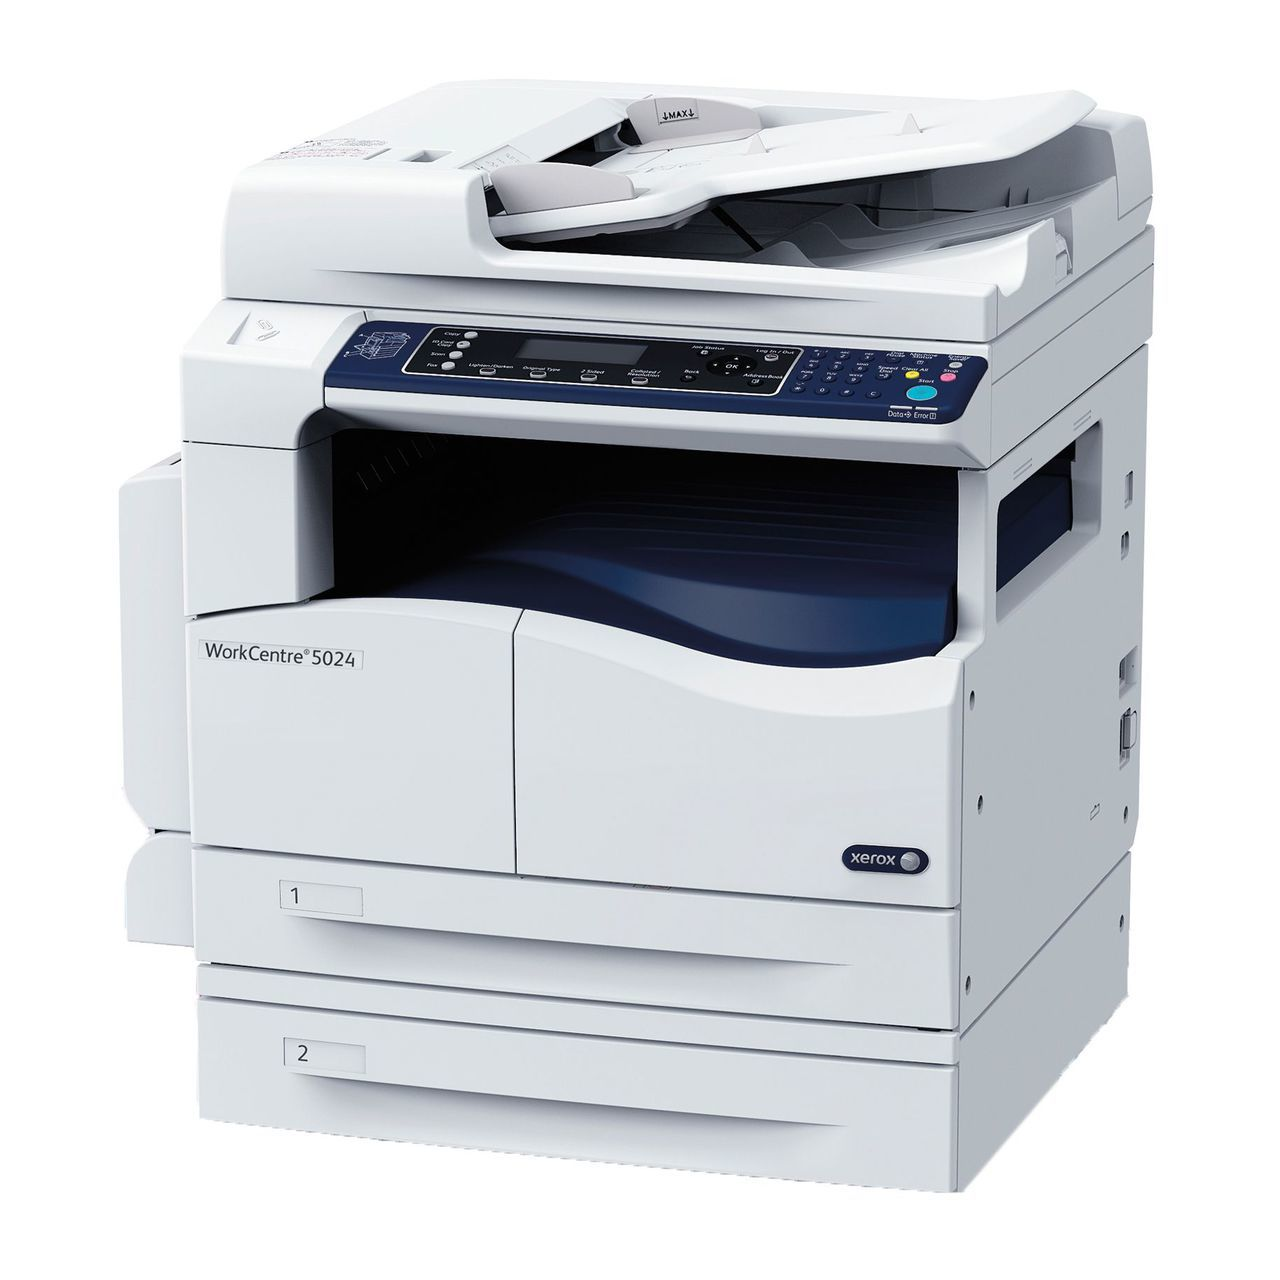 Xerox WorkCentre™ 5024 Multifunction monochrome laser printer with Print Scan Copy & optional Fax